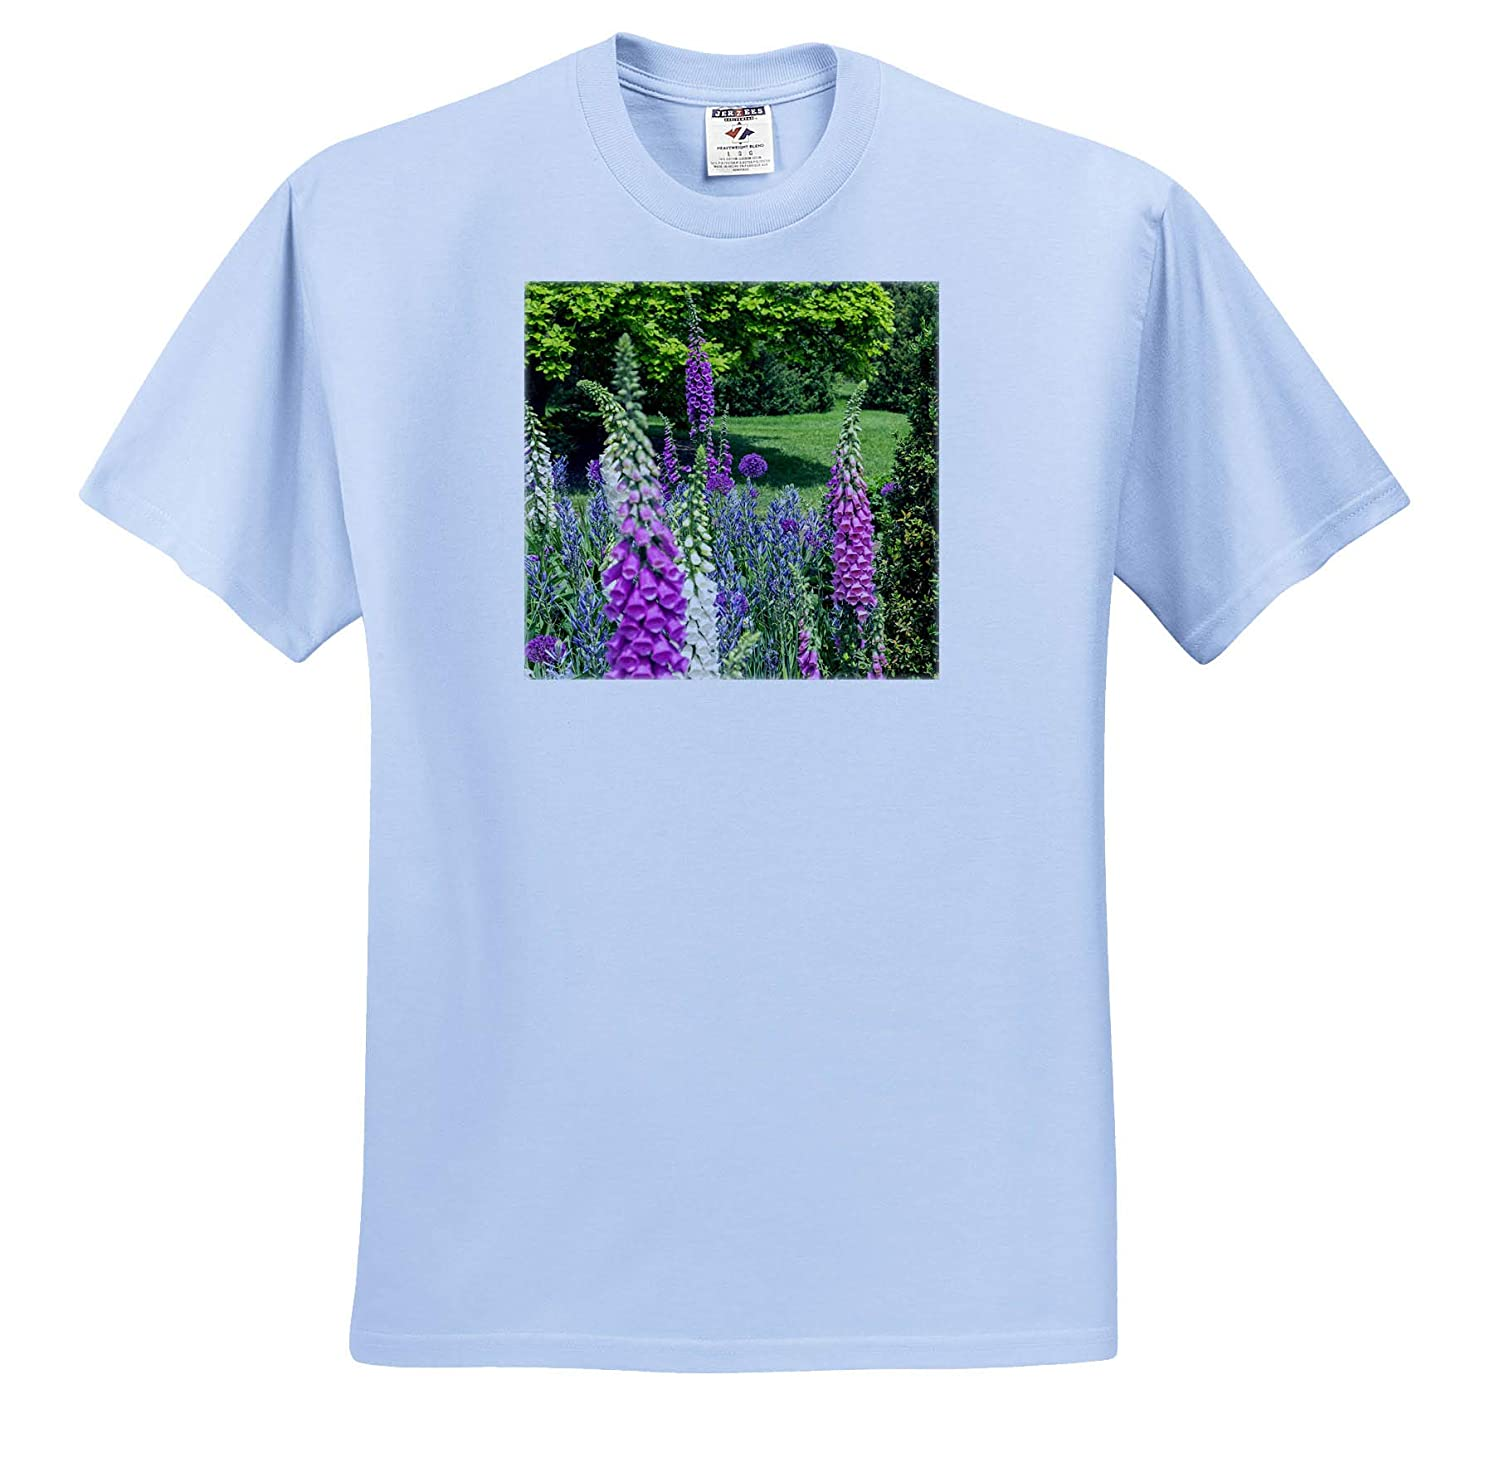 Gardens - Adult T-Shirt XL ts/_315000 3dRose Danita Delimont Foxglove and Other Spring Flowers